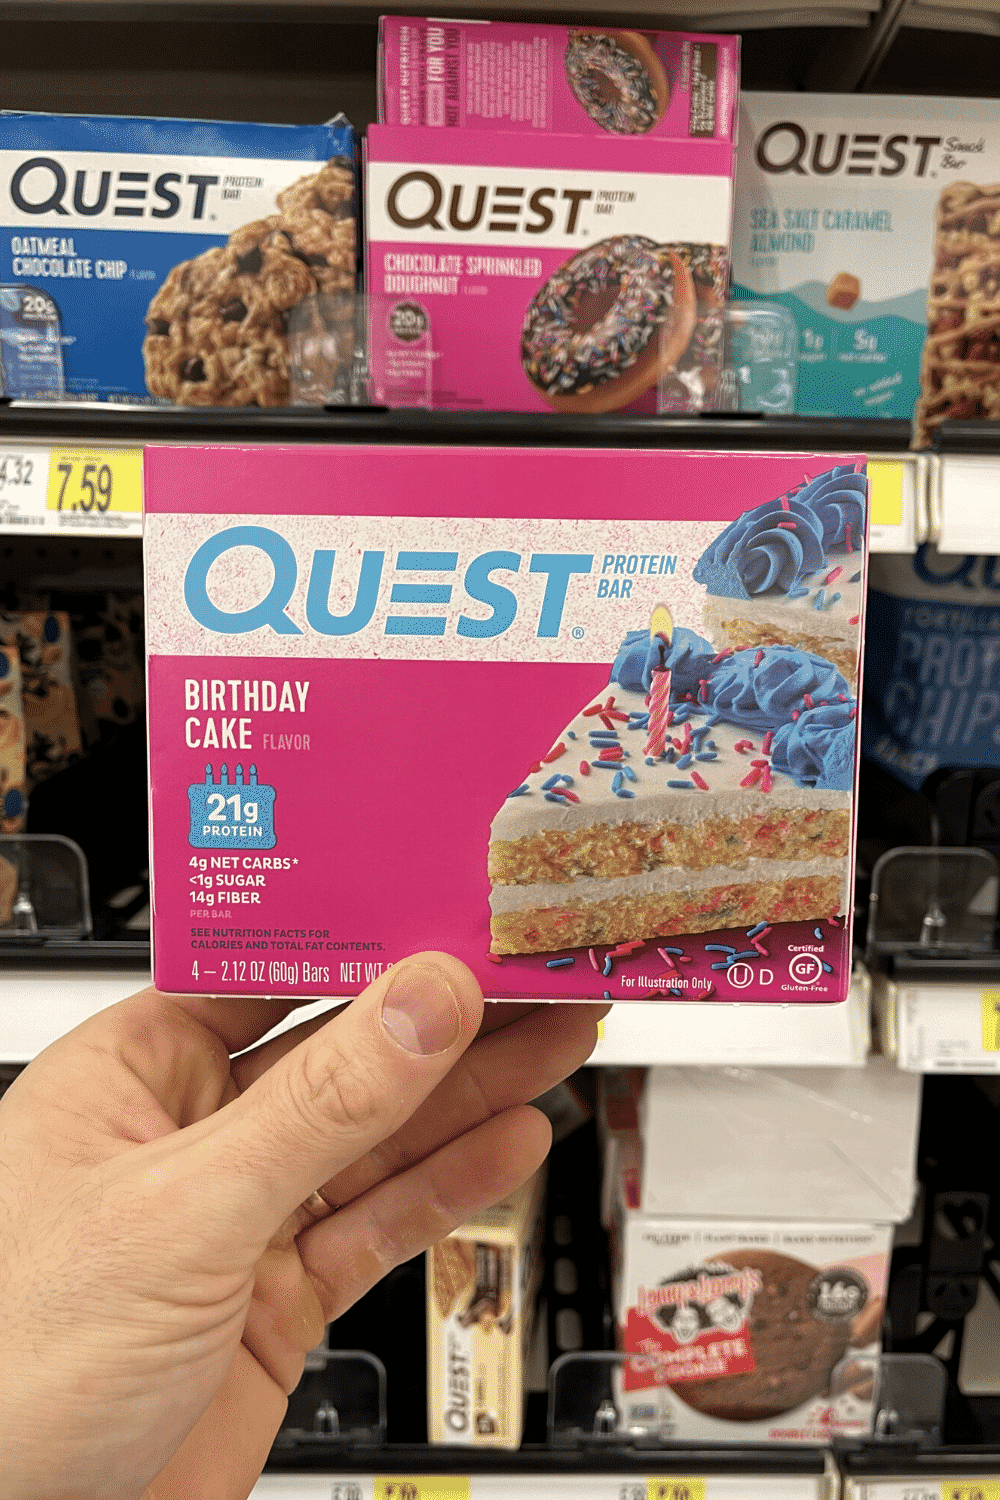 A hand holding a box of low carb birthday cake protein bars.